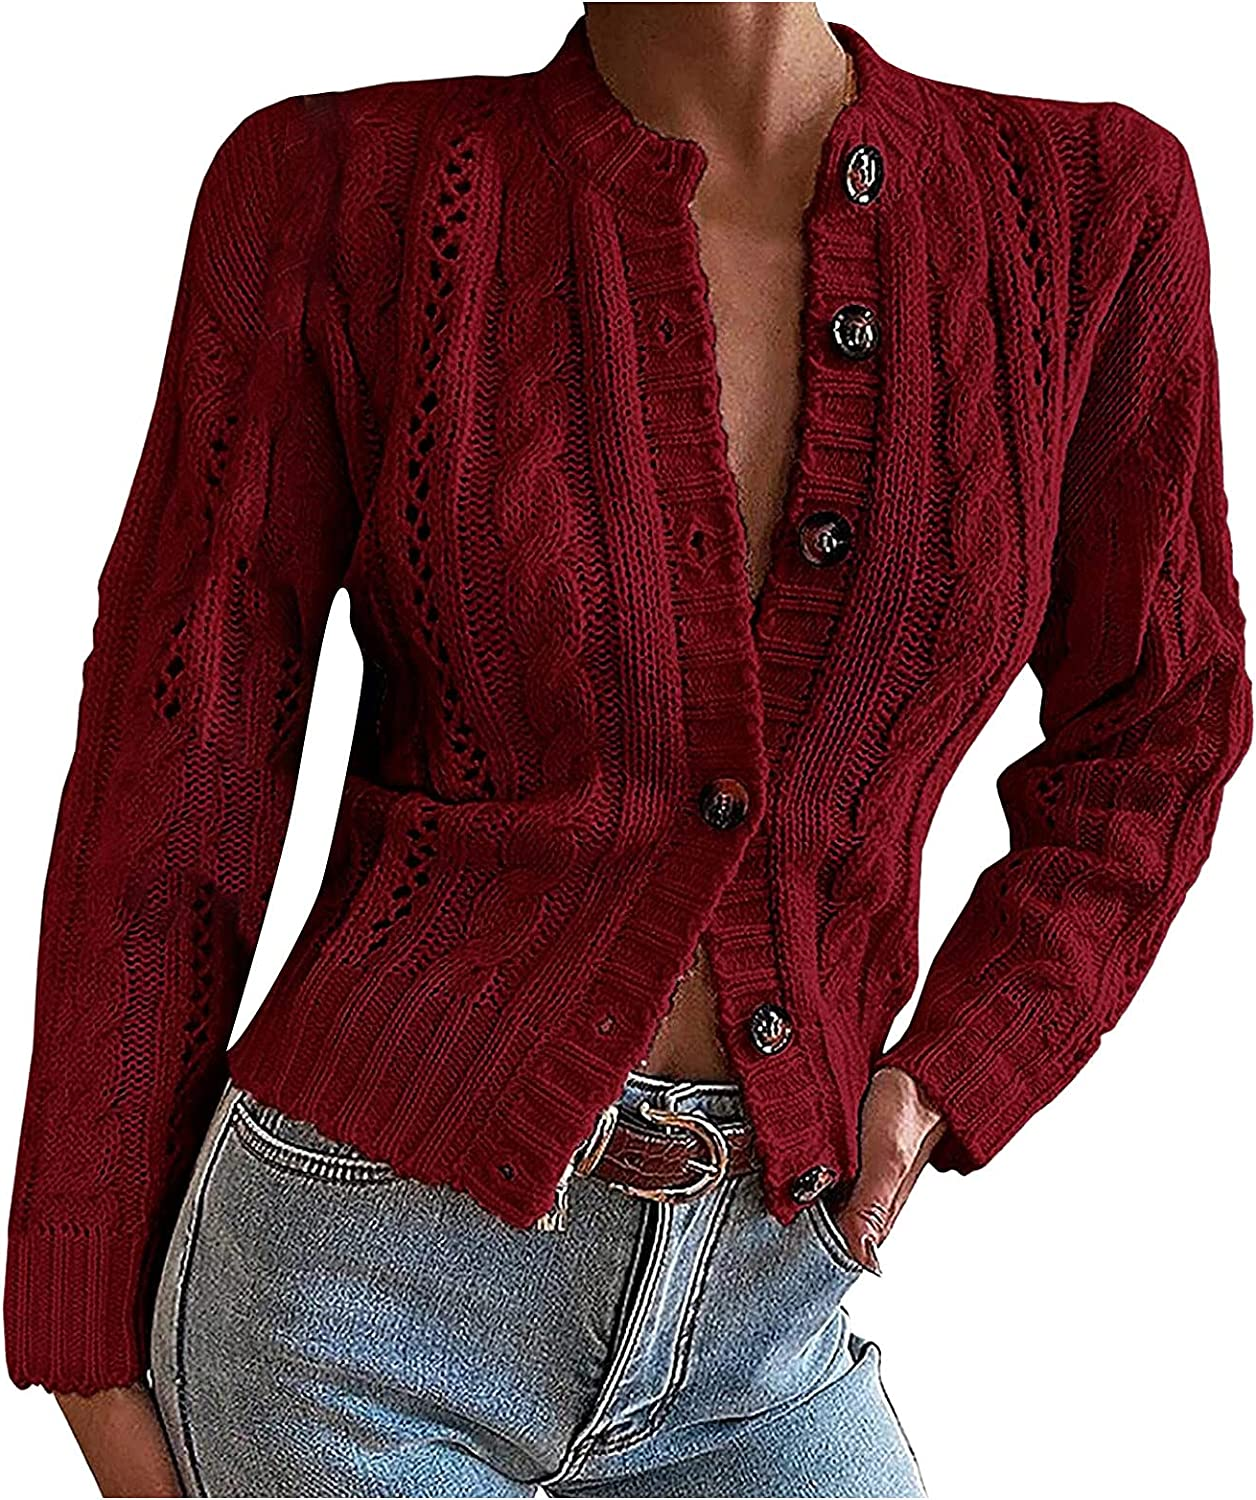 VonVonCo Fashion Cardigan Sweaters for Women Sexy V-Neck Buttons Cardigan Thick Line Sweater Blouse Coat